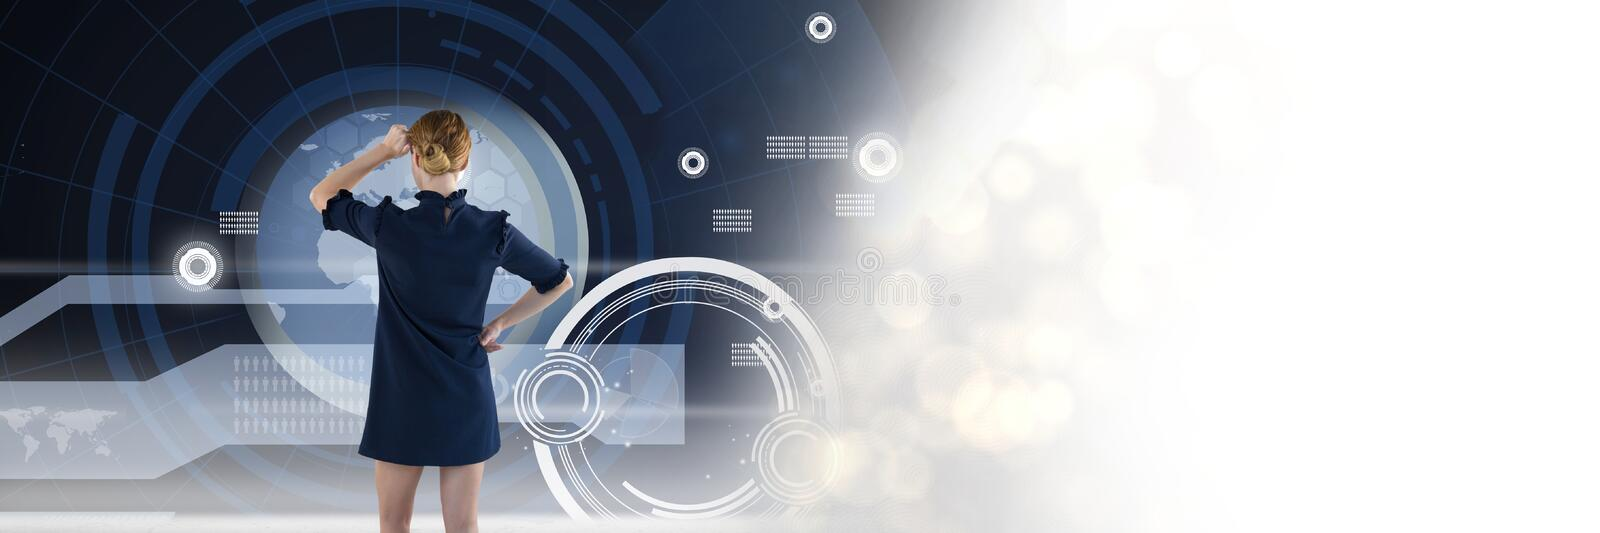 Woman looking at technology information interface transition royalty free stock photo